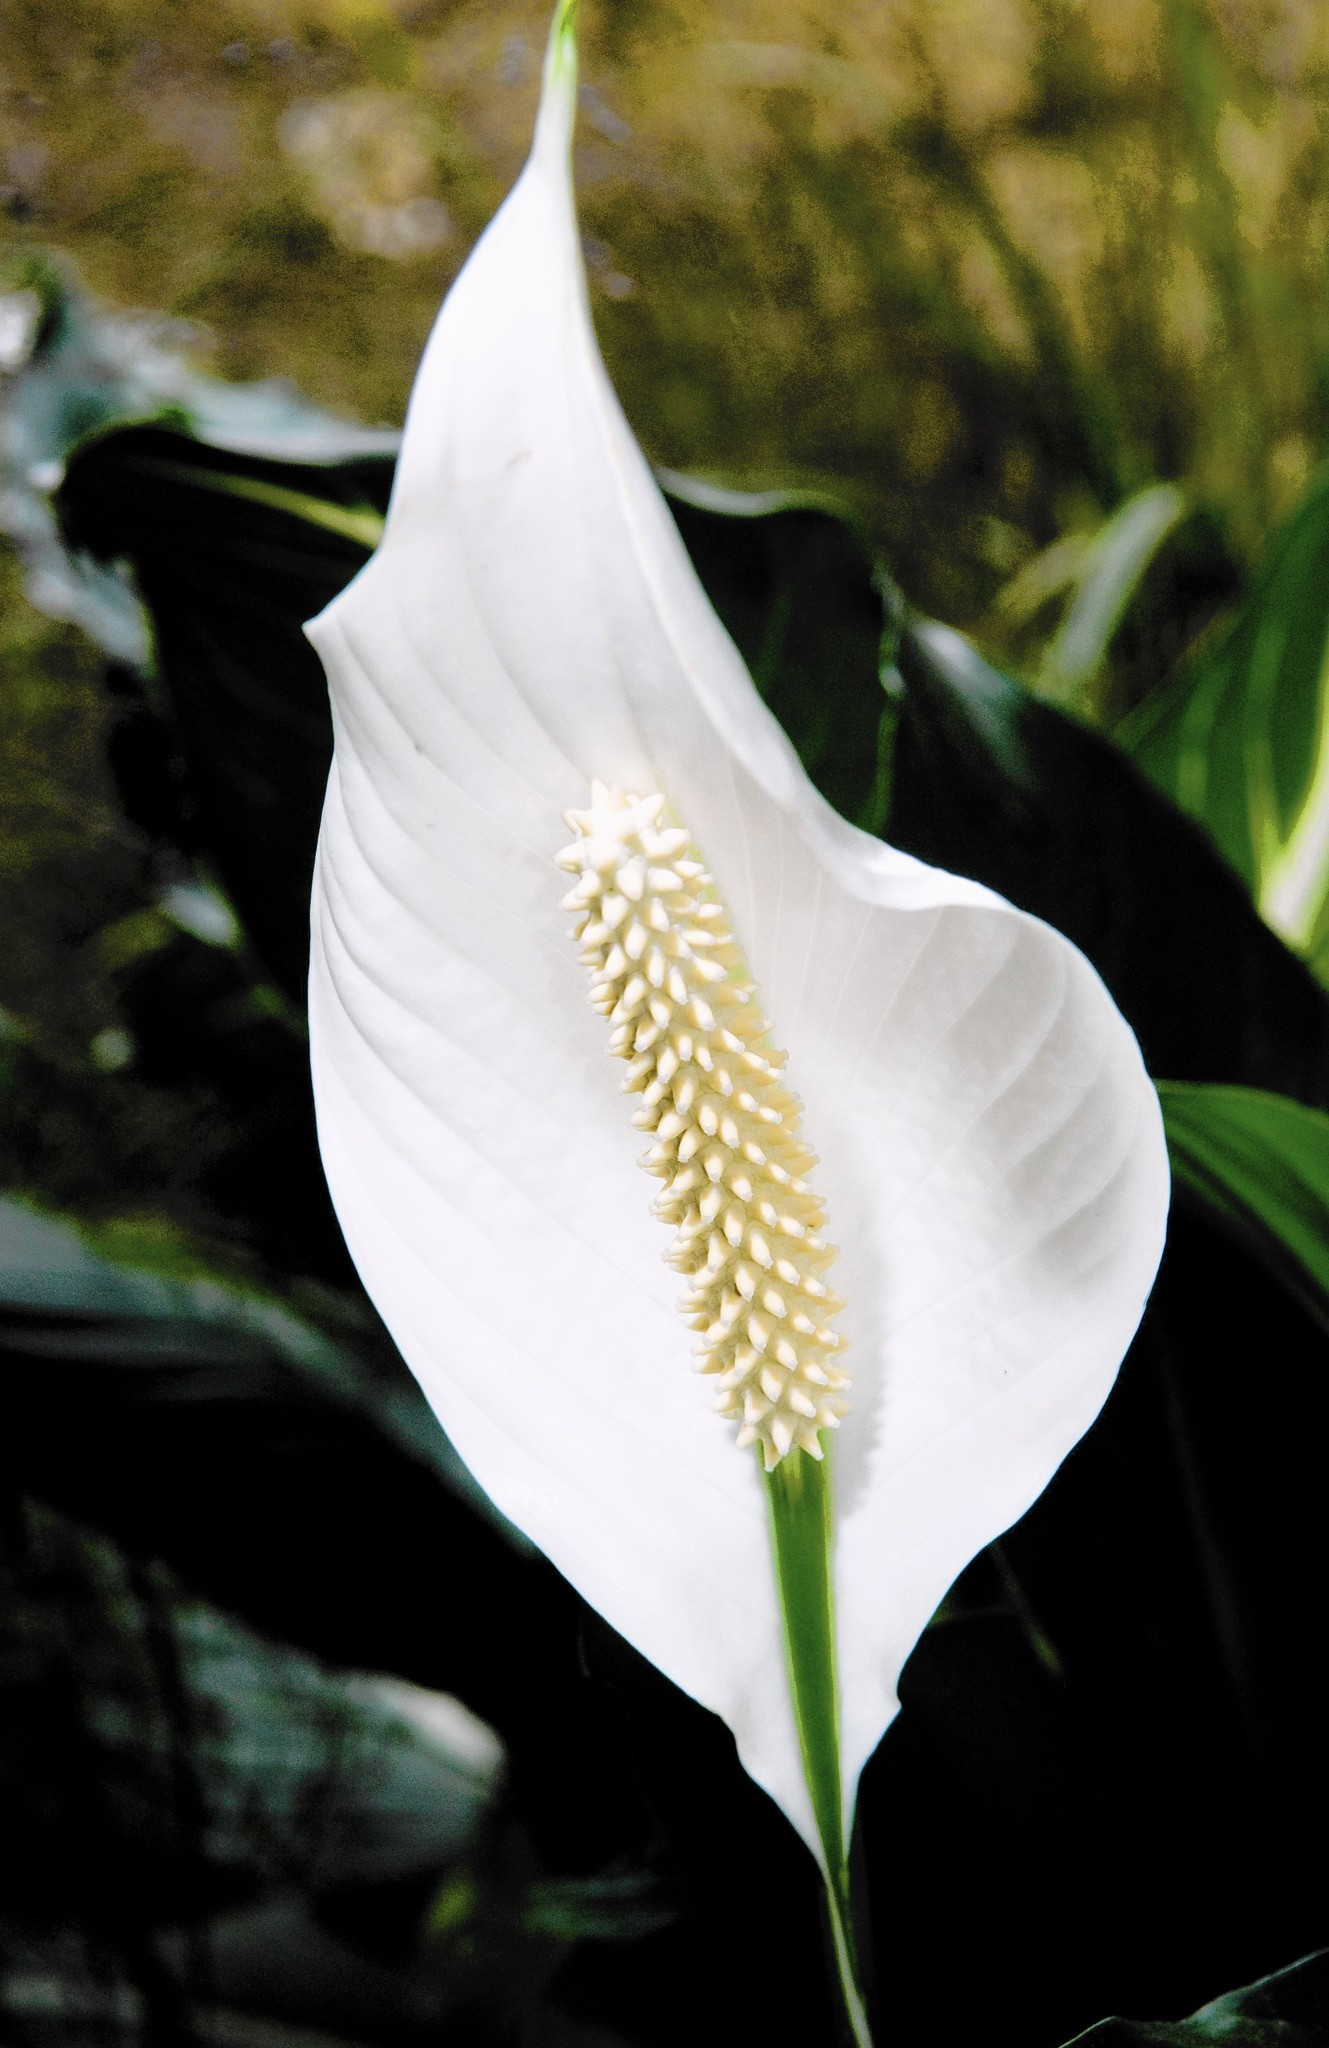 Bringing Peace Lily Back To Health Requires Attention To Its Growing